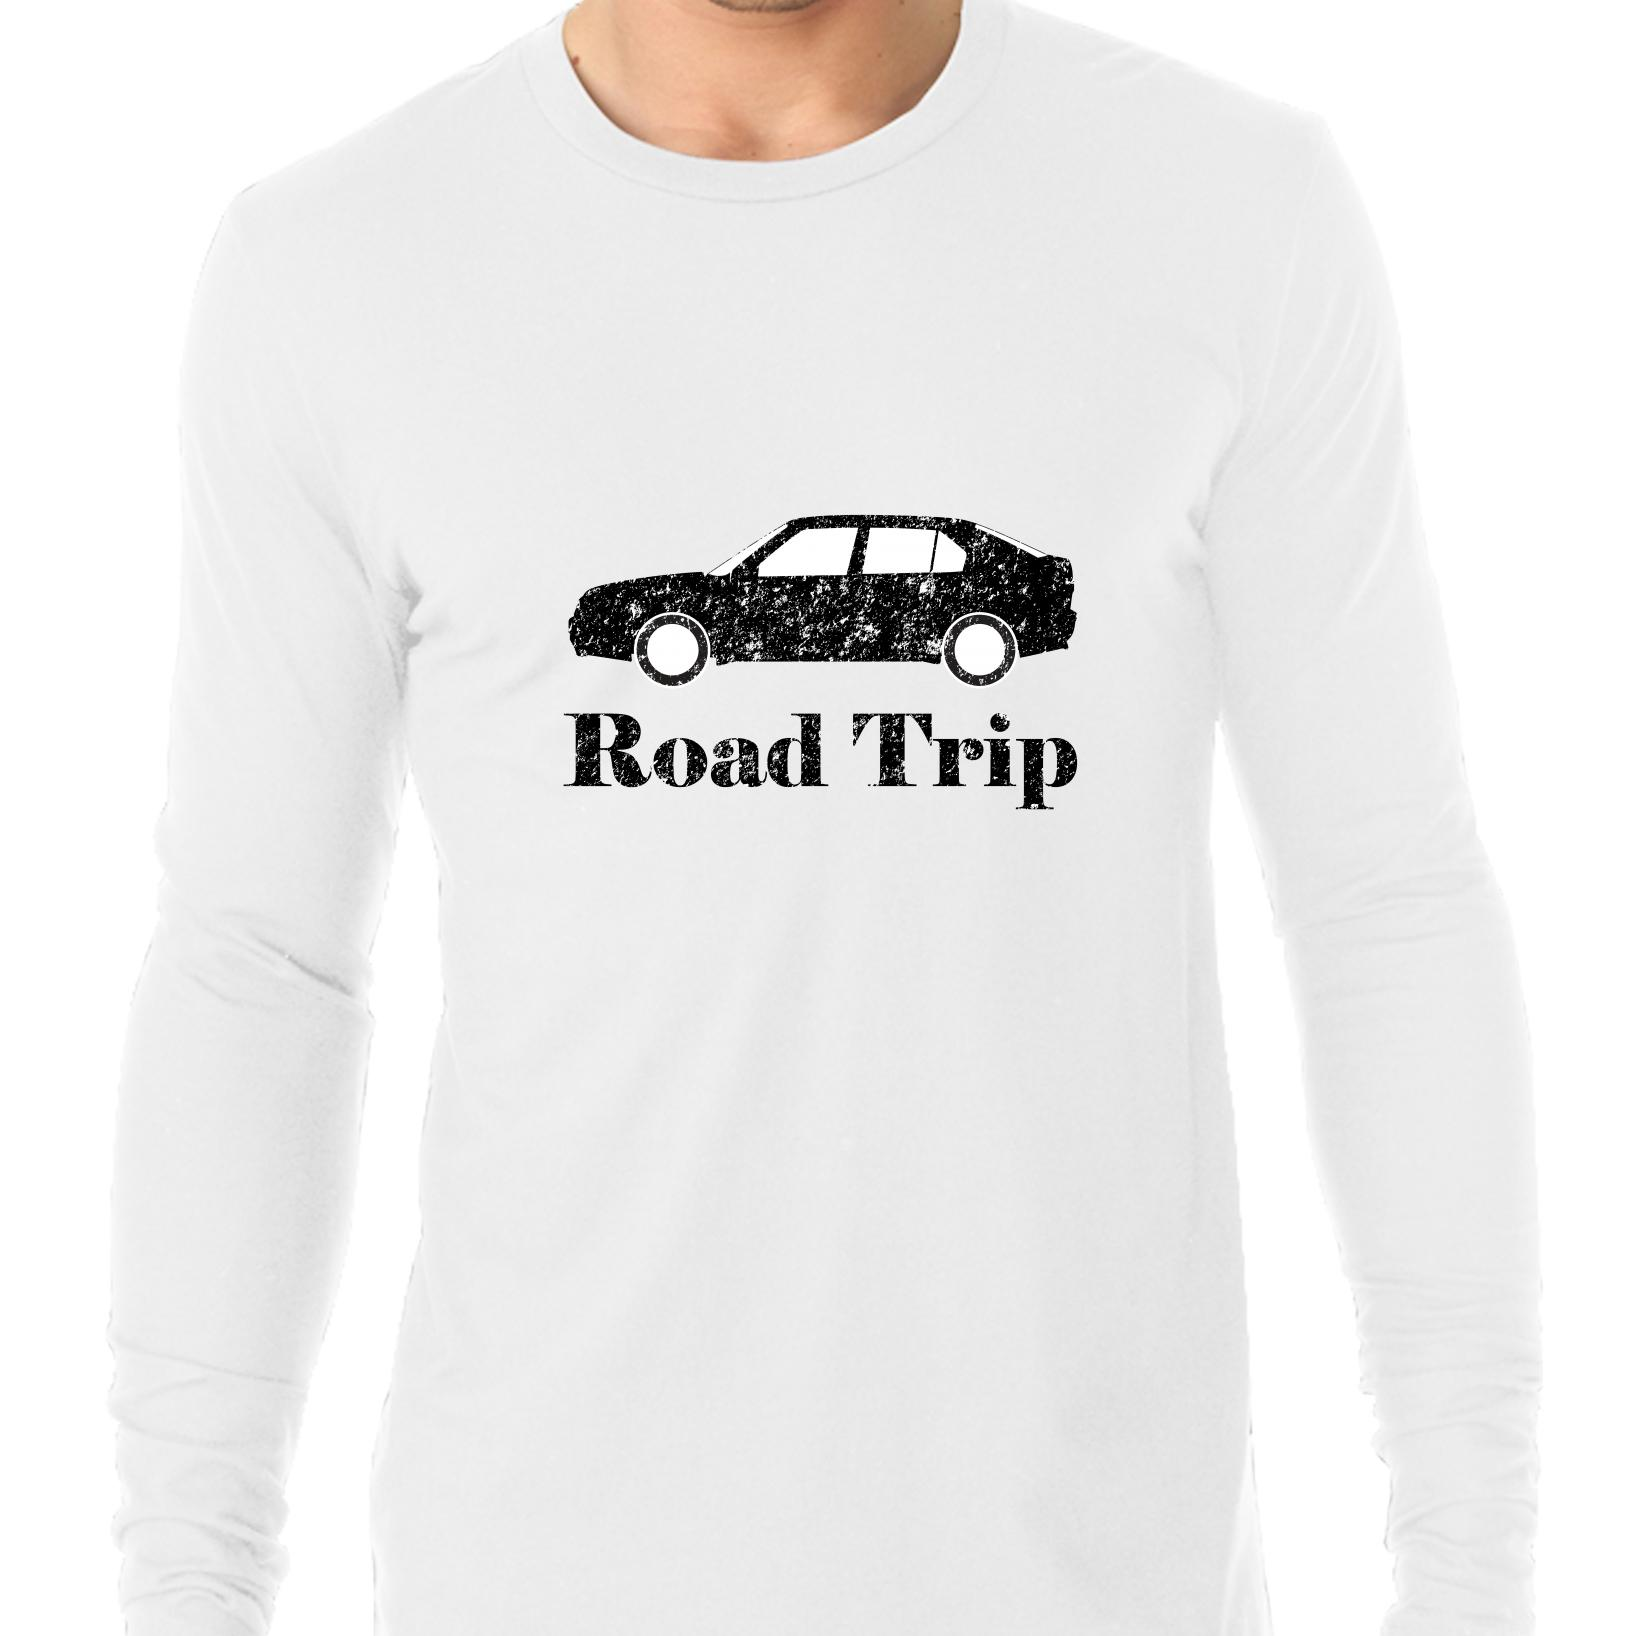 Road Trip - With Car Graphic Great Family Vacation Men's Long Sleeve T-Shirt